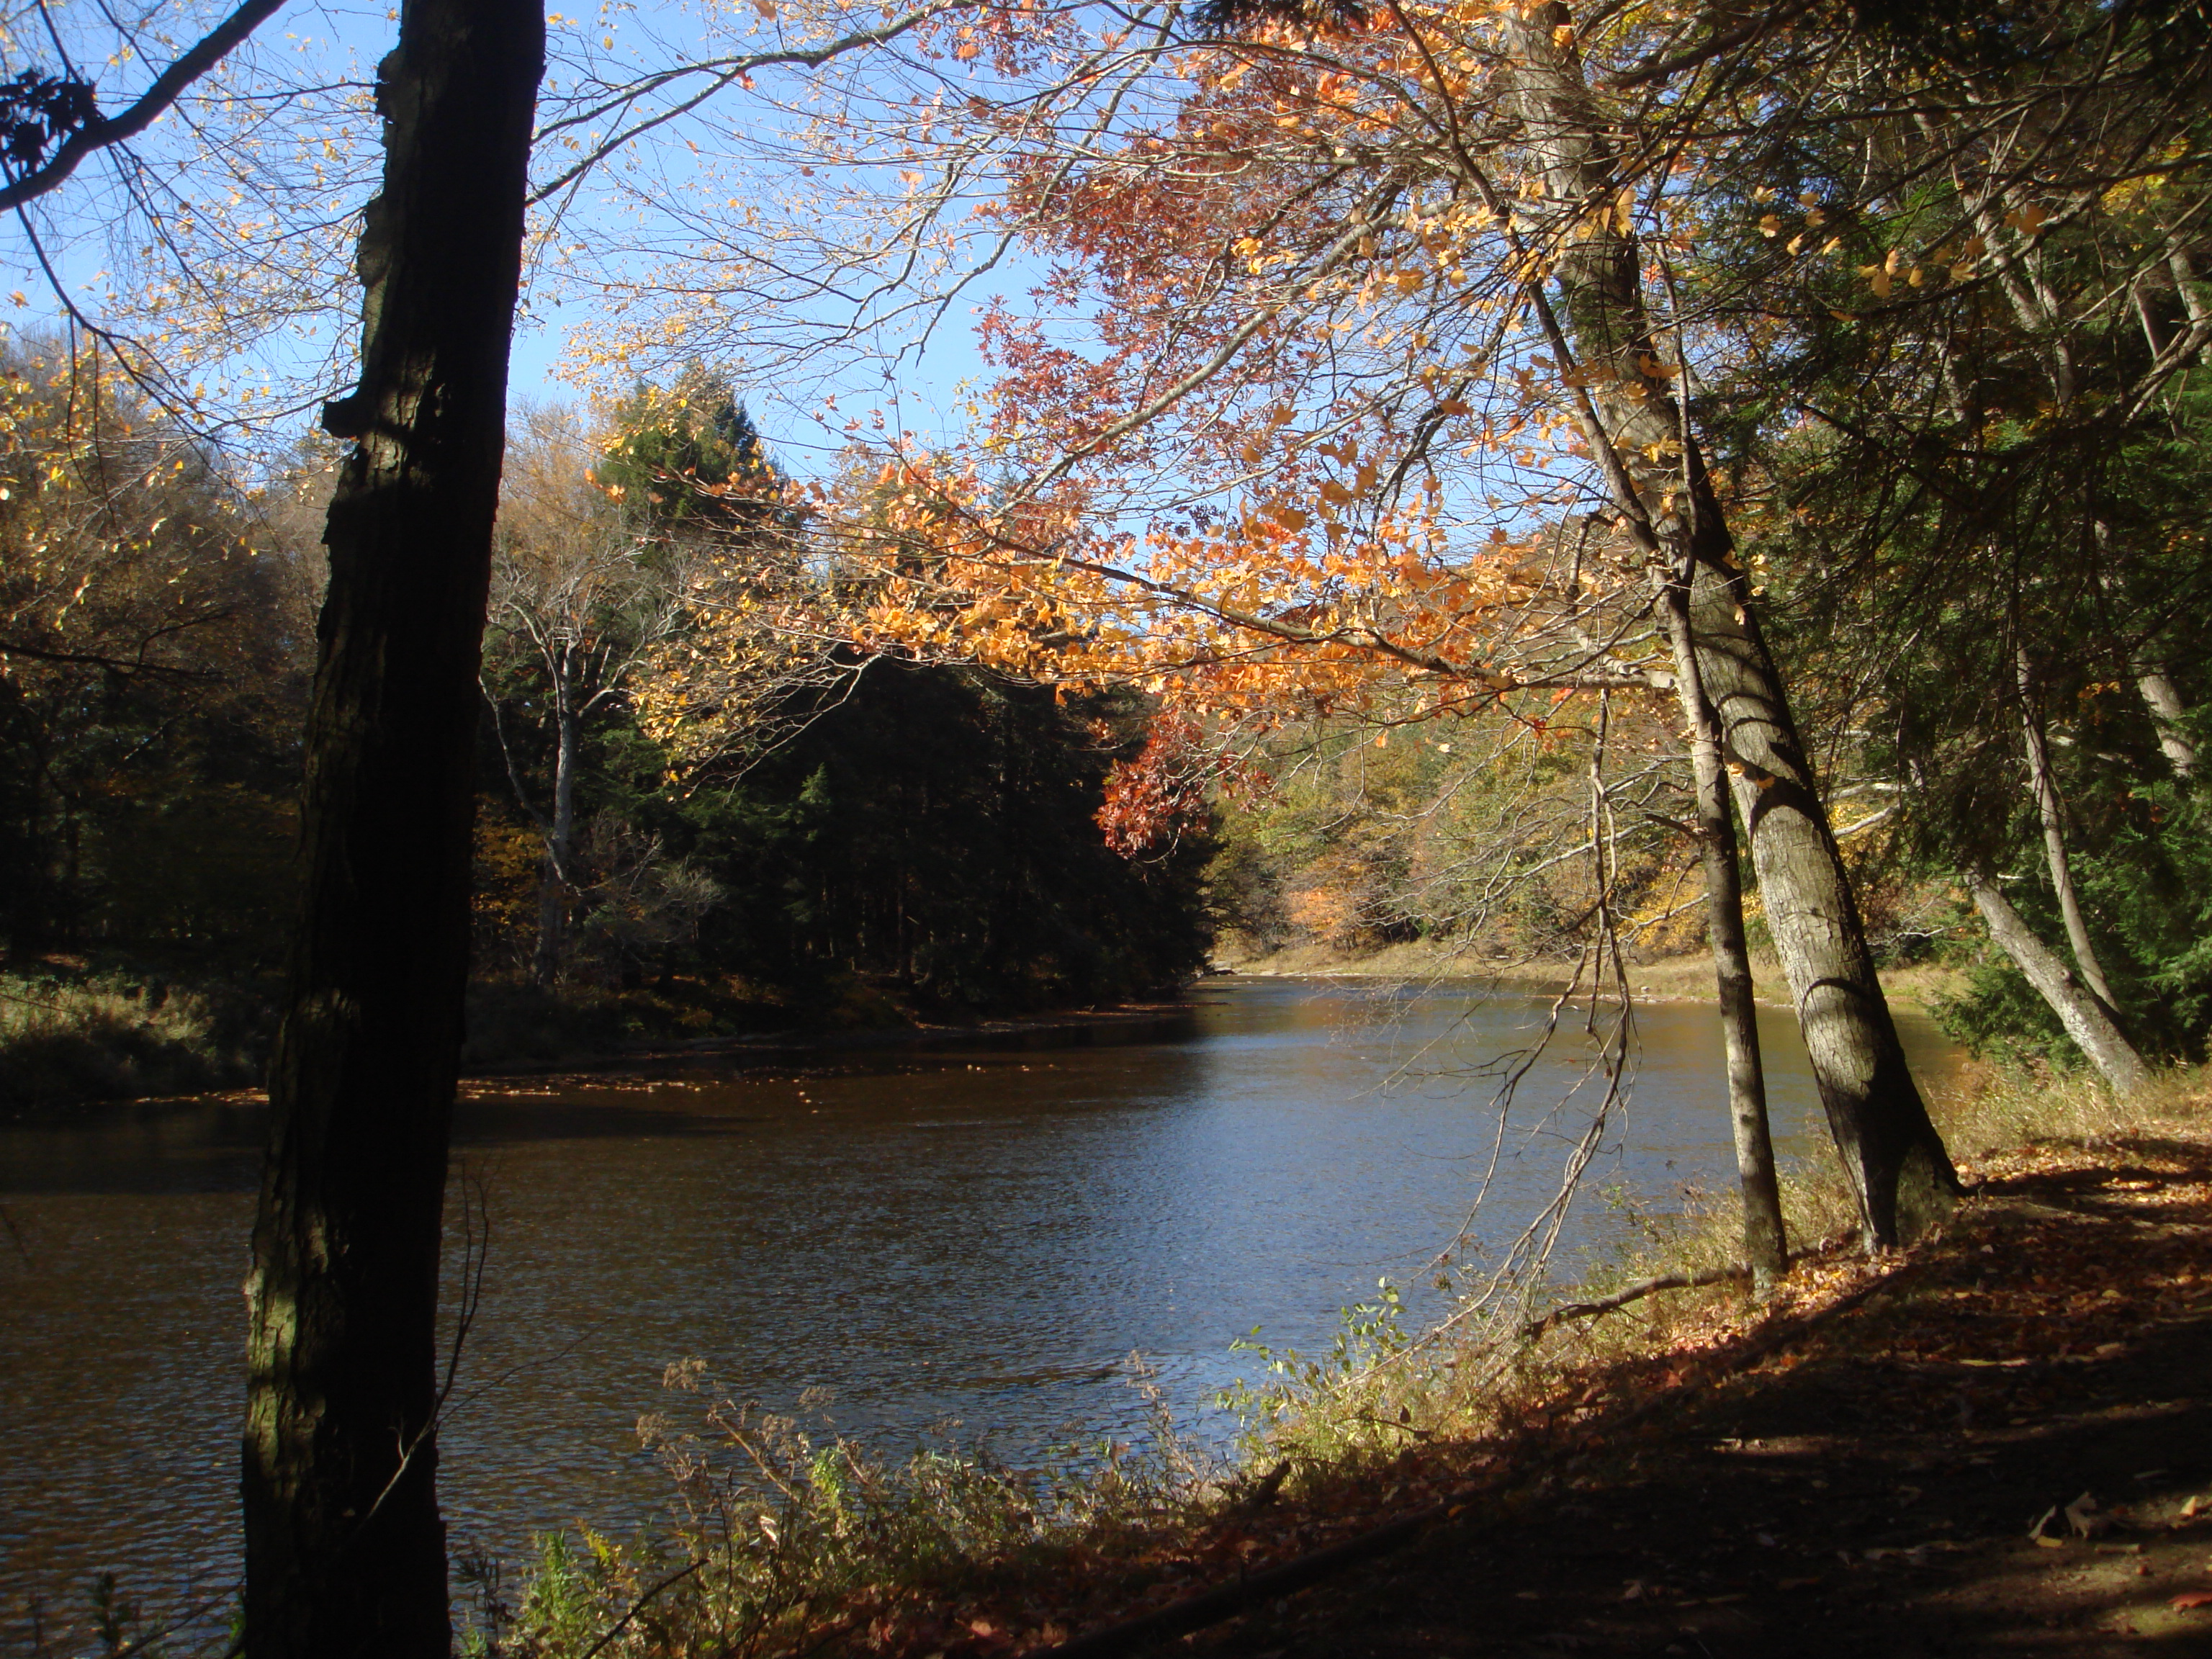 Clarion River at Cook Forest, as seen from River Trail (Photo by Andrew)